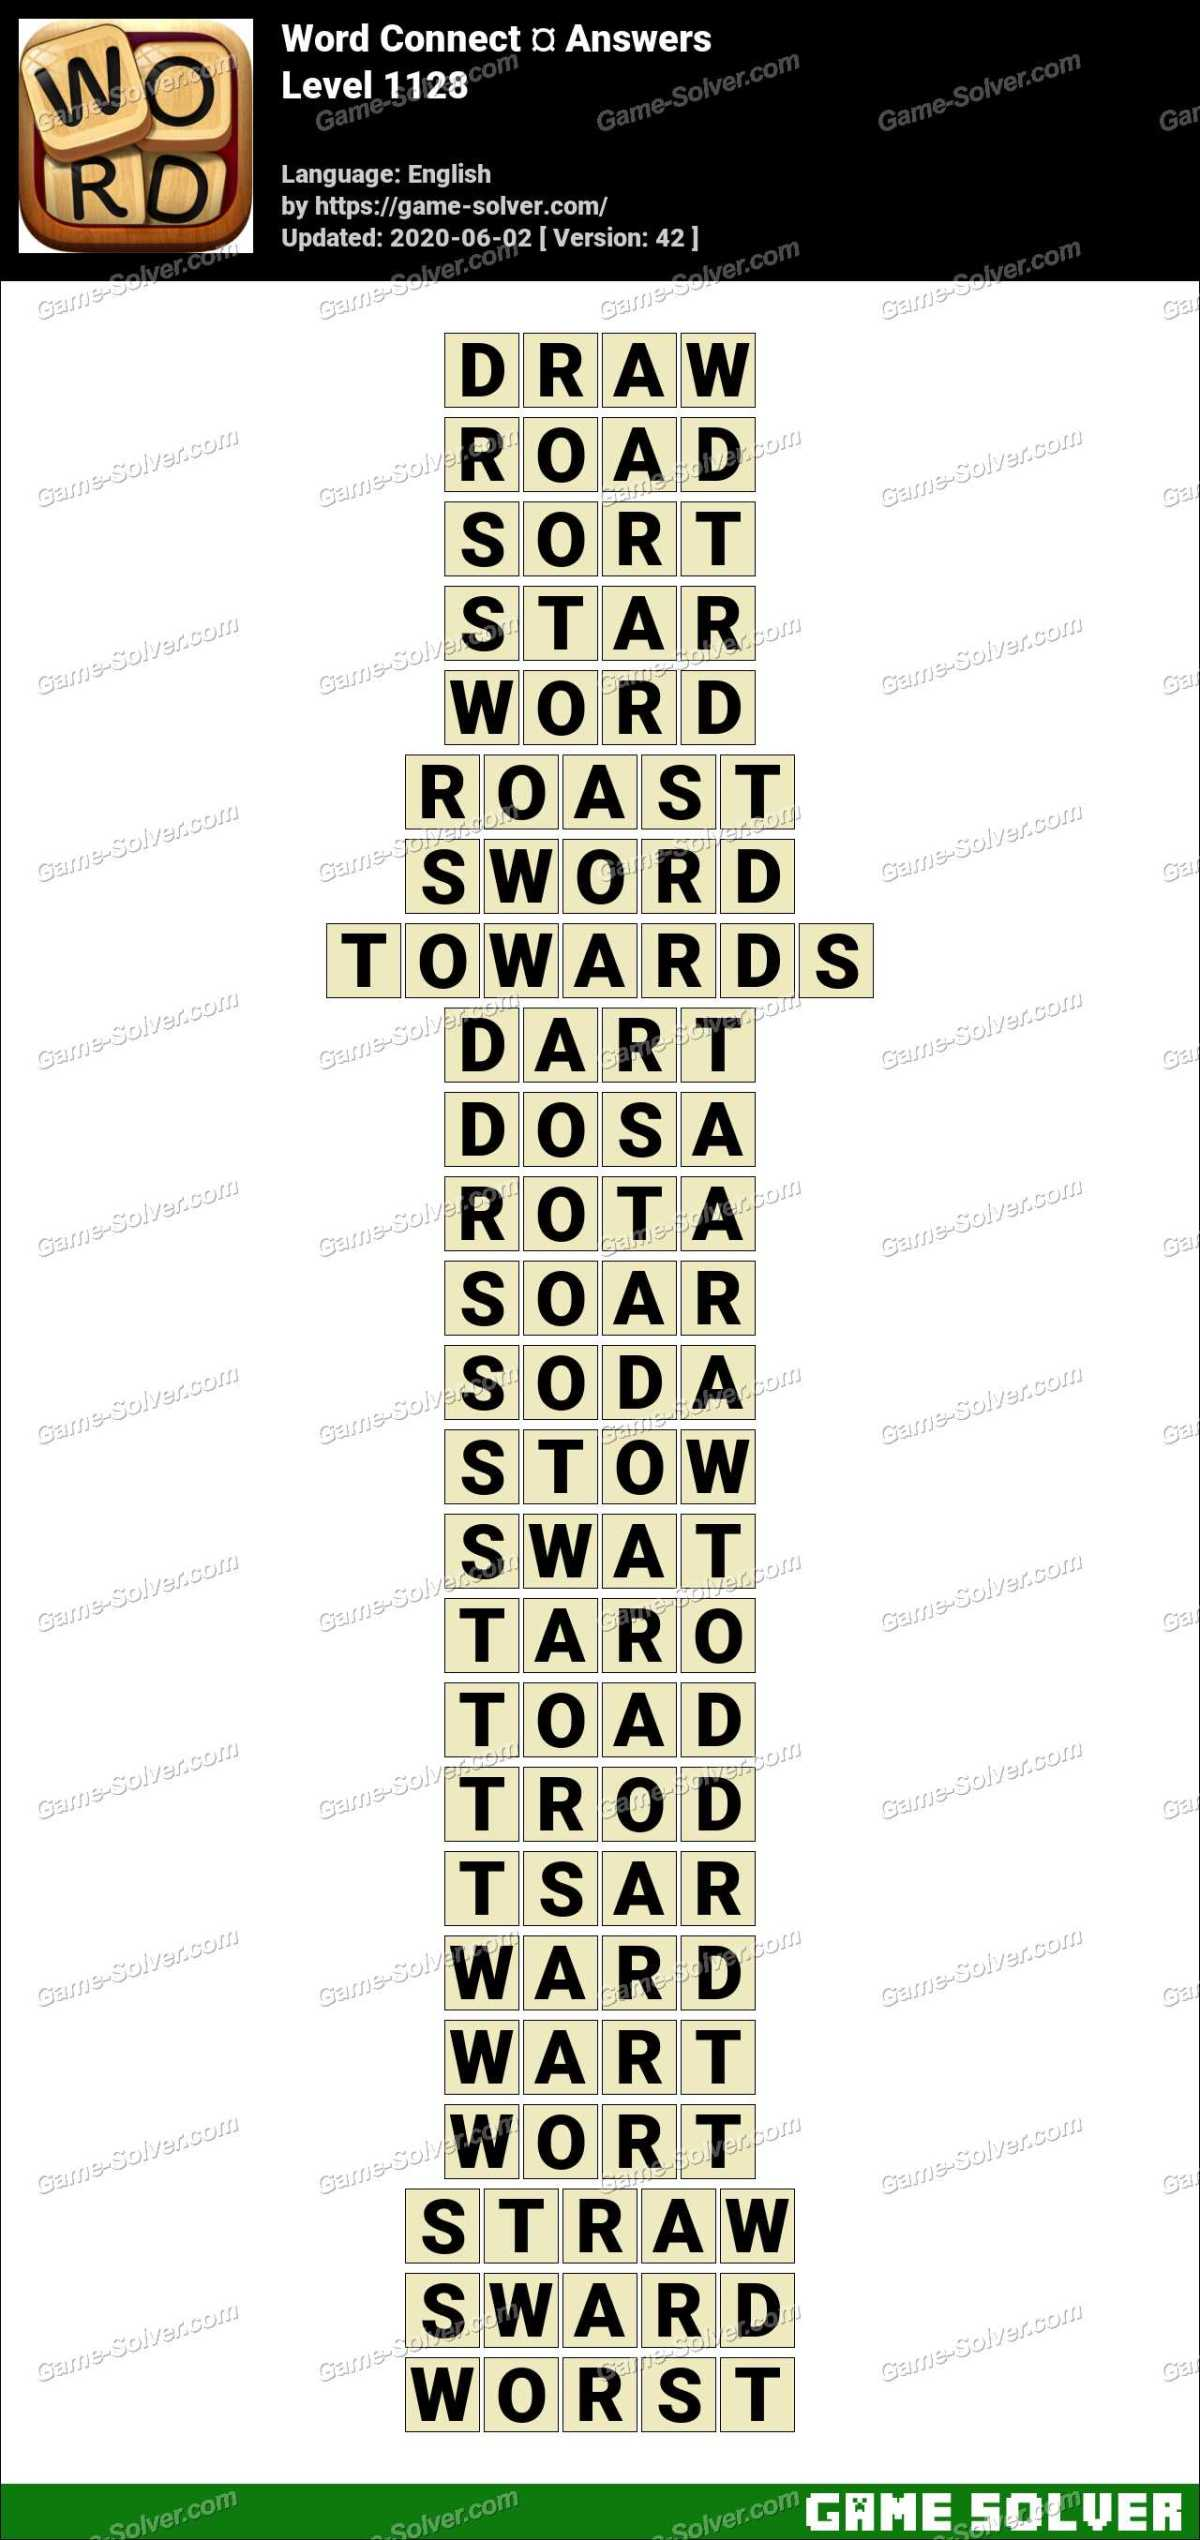 Word Connect Level 1128 Answers